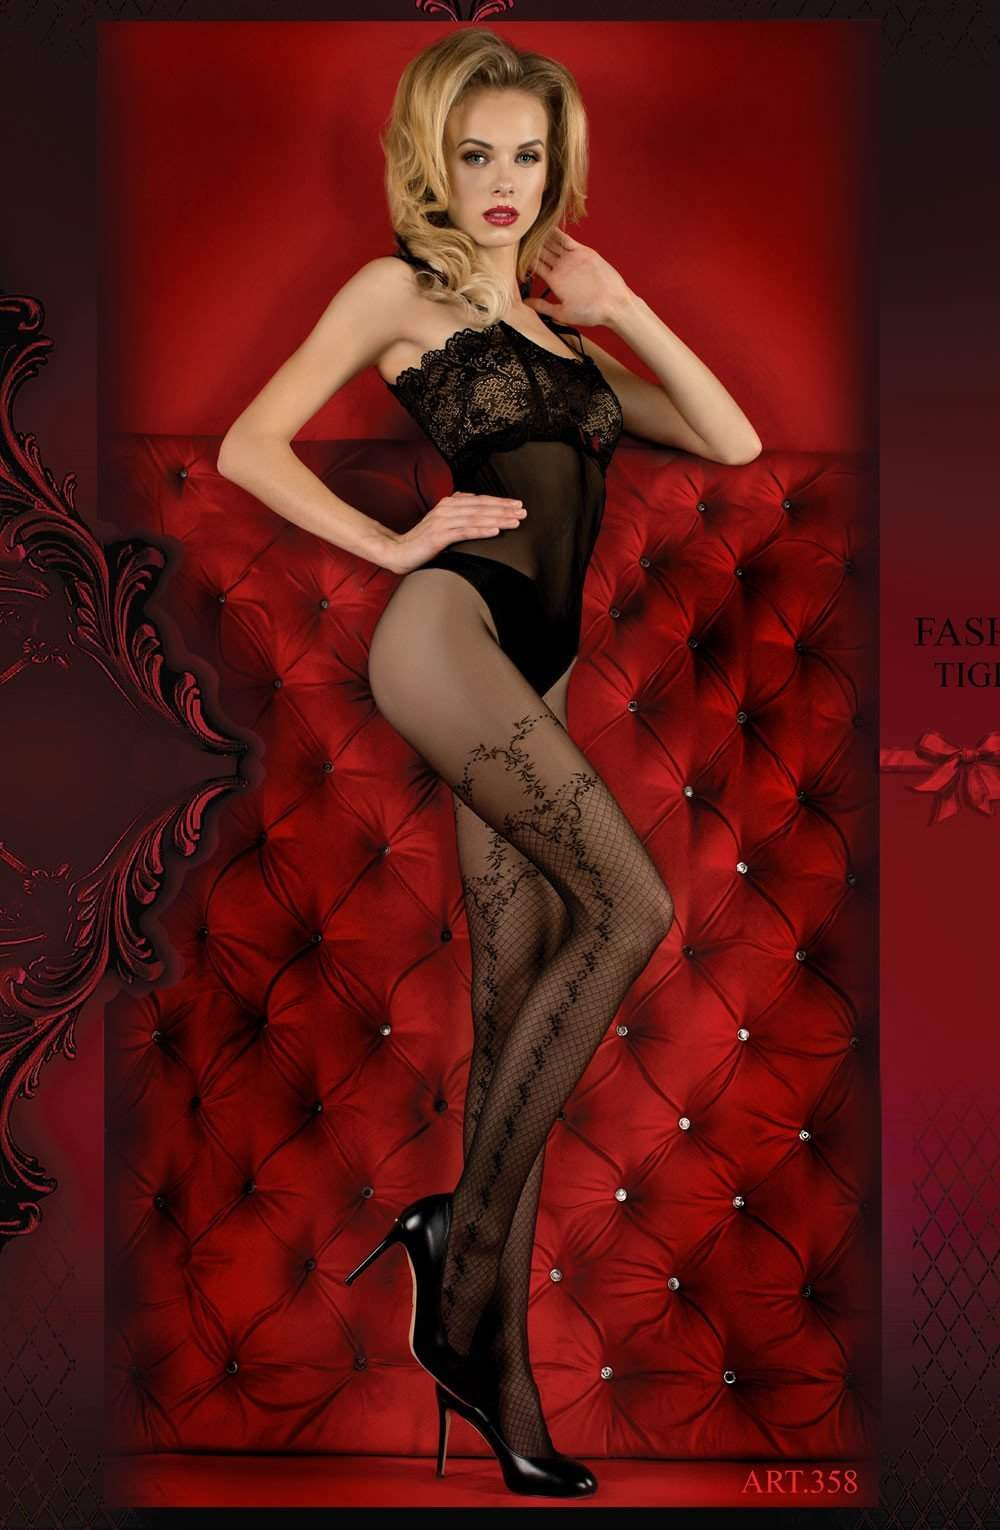 Ballerina 358 Tights Nero (Black) - Ballerina - Katys Boutique Lingerie USA